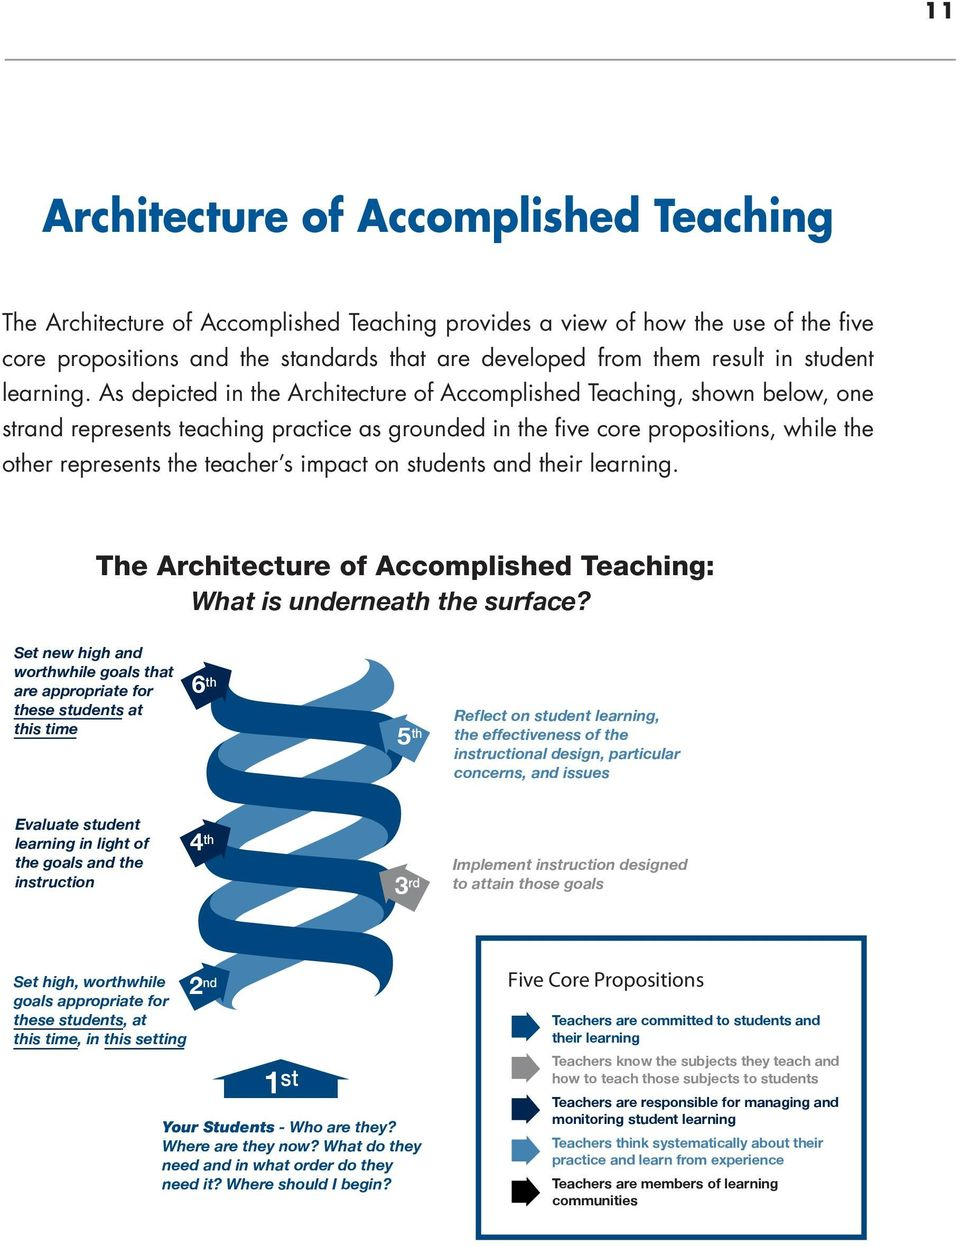 As depicted in the Architecture of Accomplished Teaching, shown below, one strand represents teaching practice as grounded in the five core propositions, while the other represents the teacher s